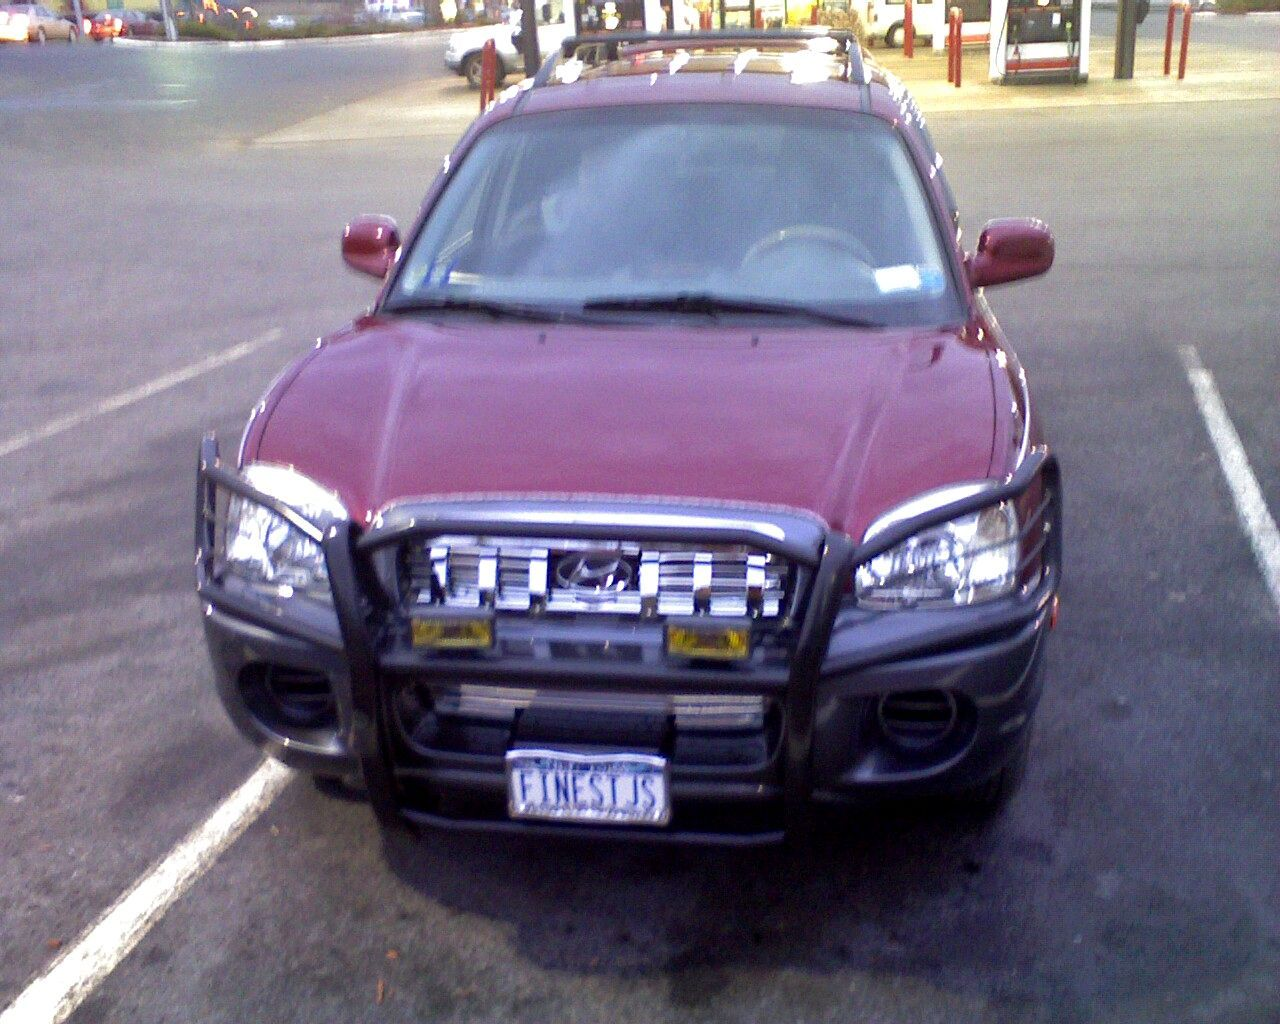 nypdnysfinest 2003 hyundai santa fe specs photos modification info at cardomain. Black Bedroom Furniture Sets. Home Design Ideas